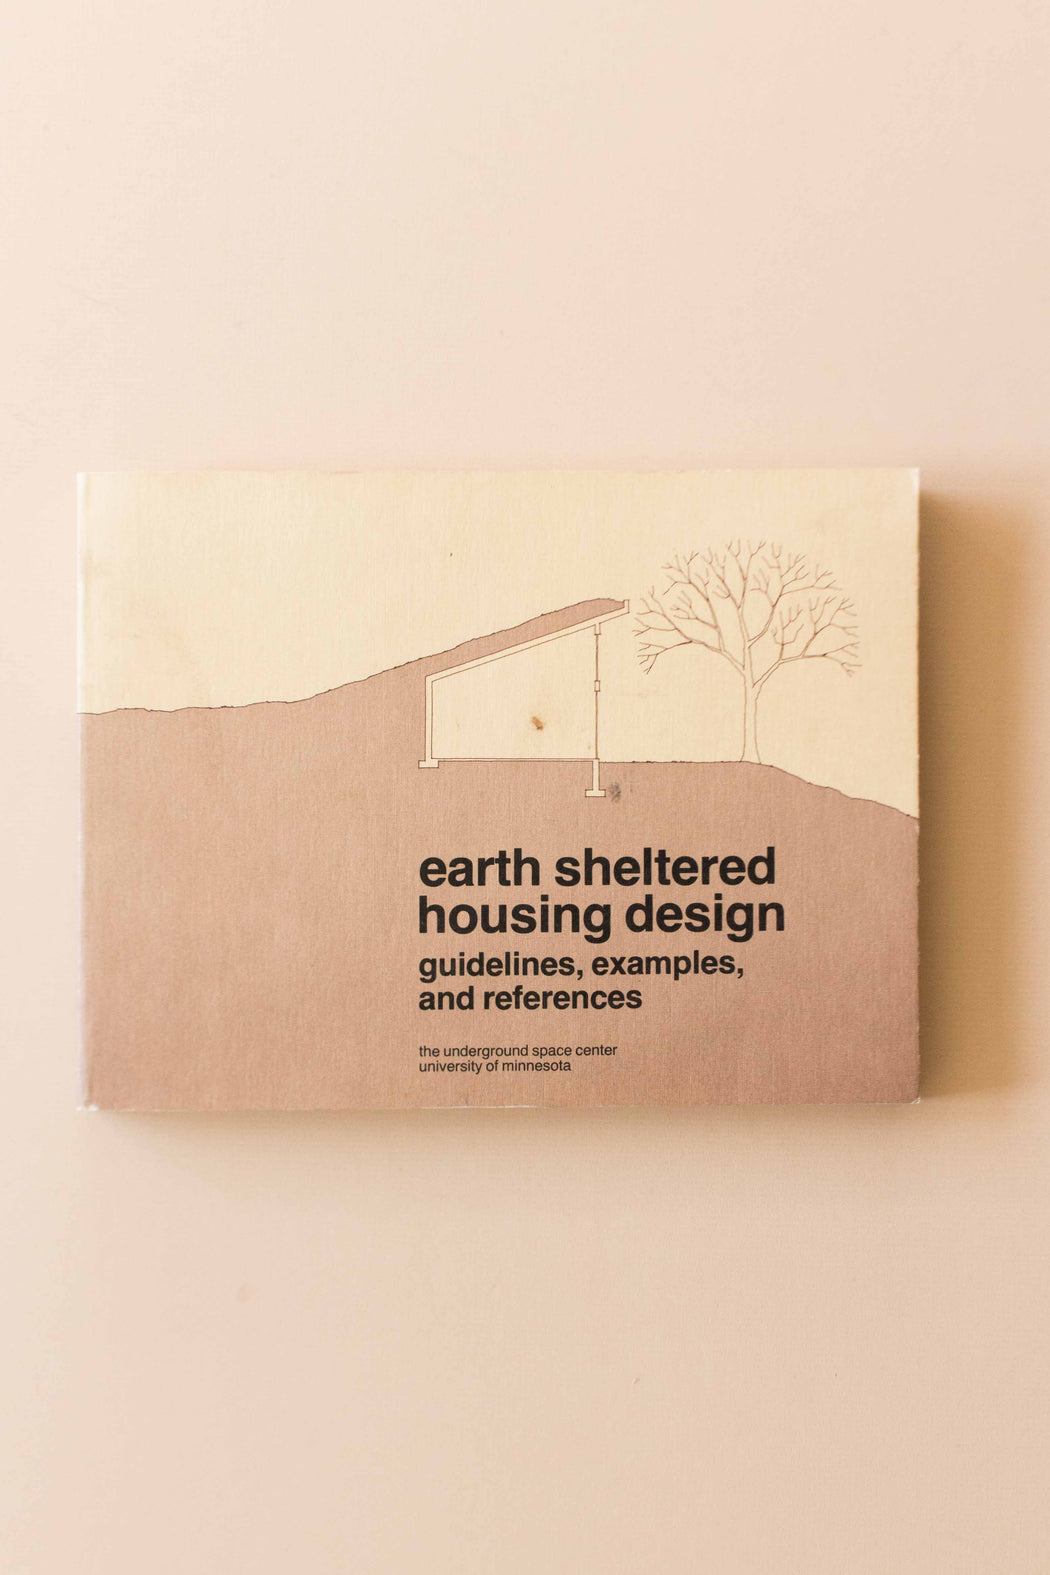 Earth Sheltered Housing Design (1979)